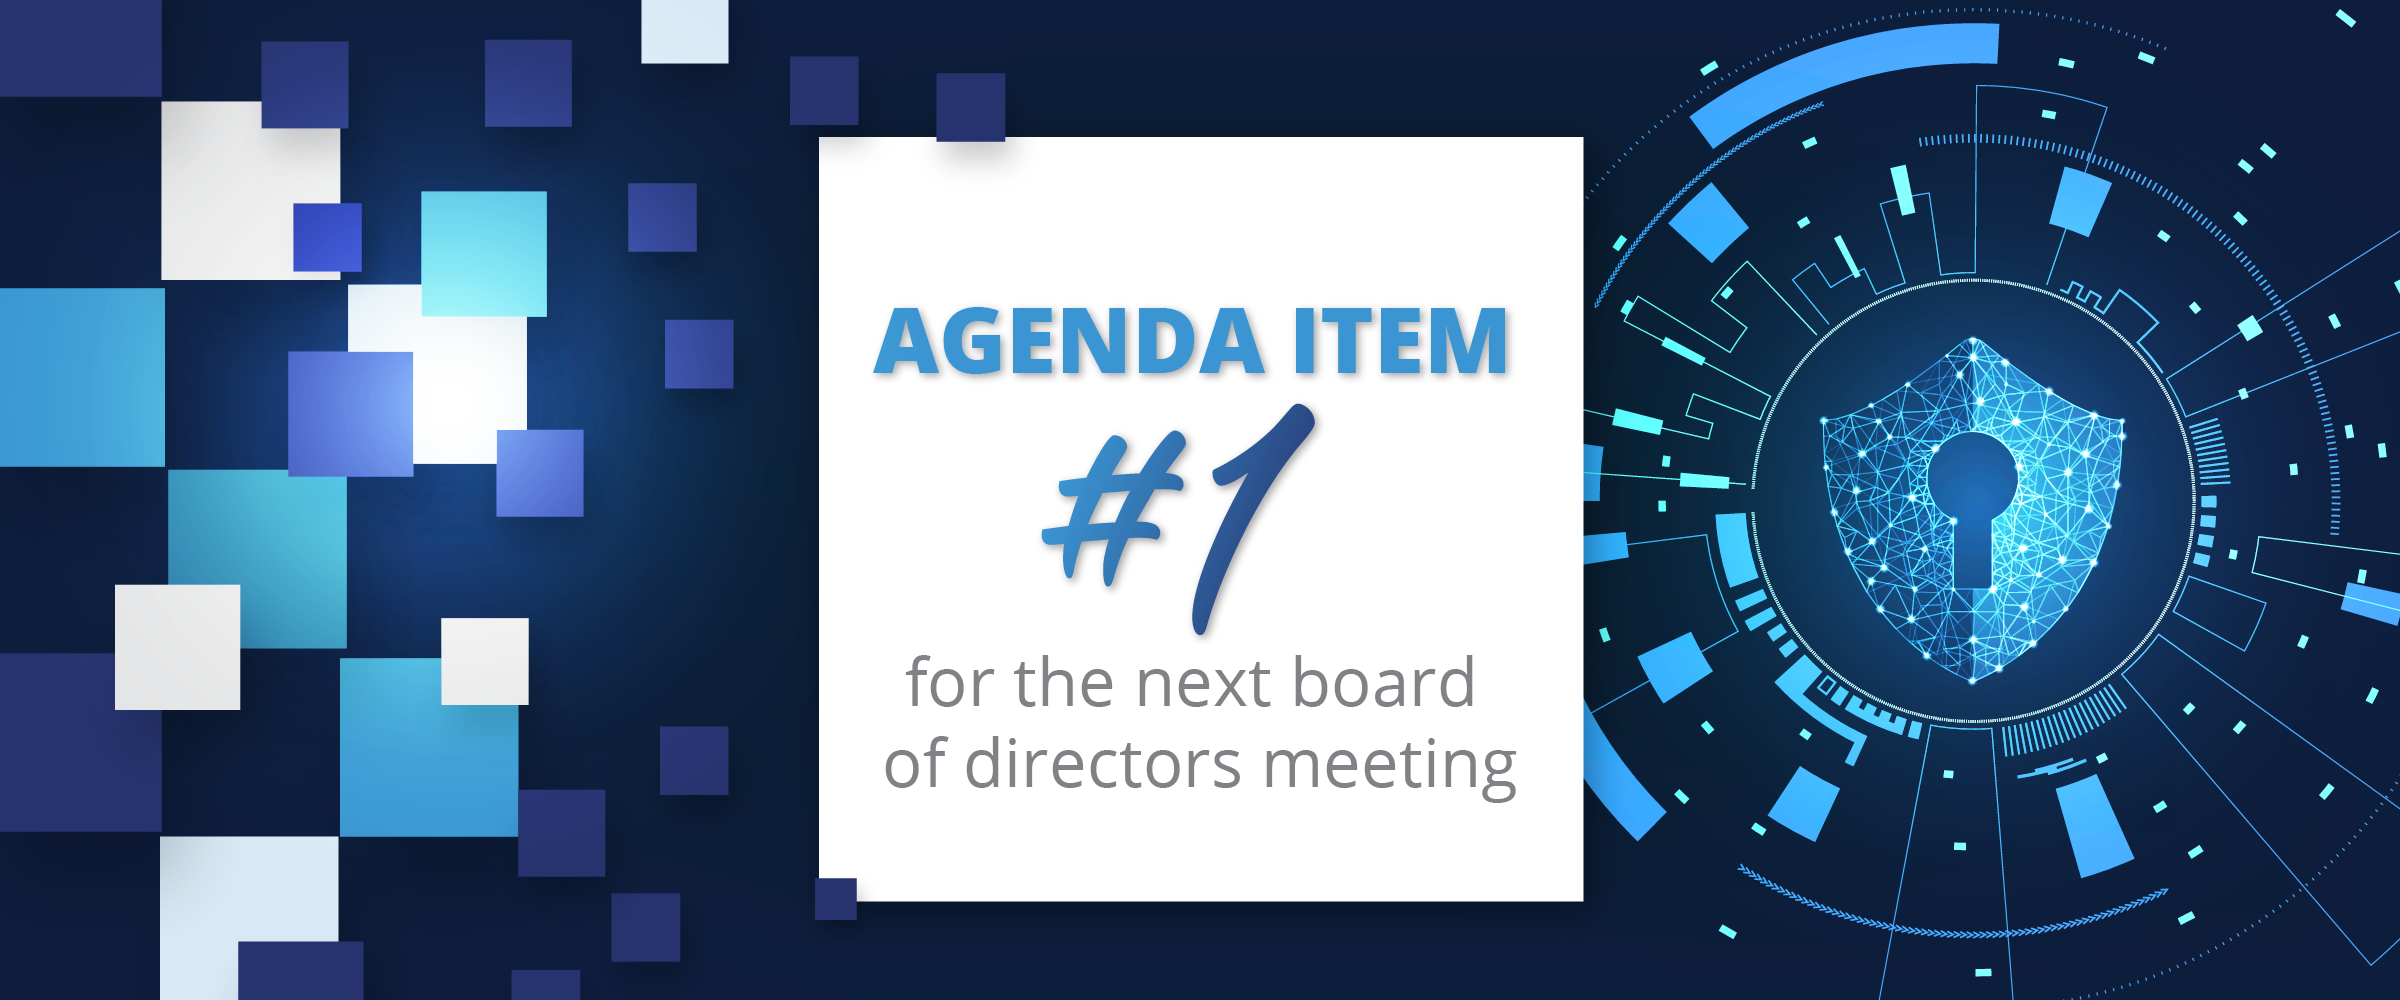 Agenda Item 1 for the next board of directors meeting